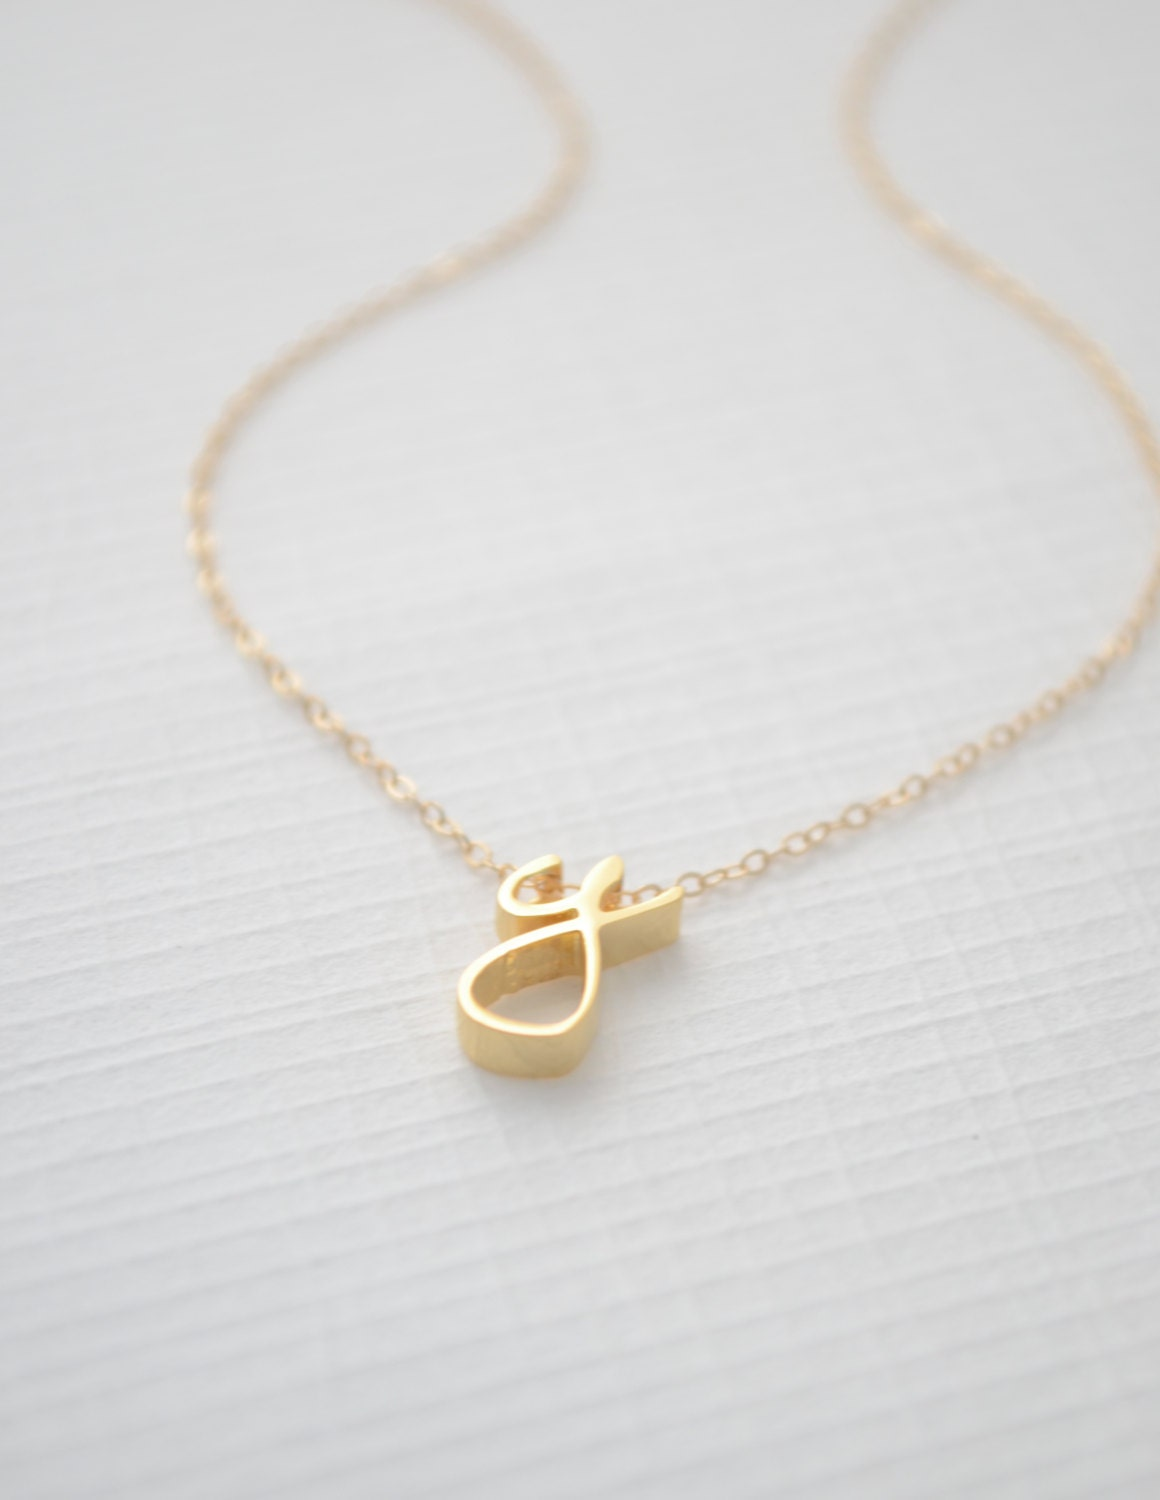 Gold Cursive Initial Necklace Cursive initial by OliveYewJewels